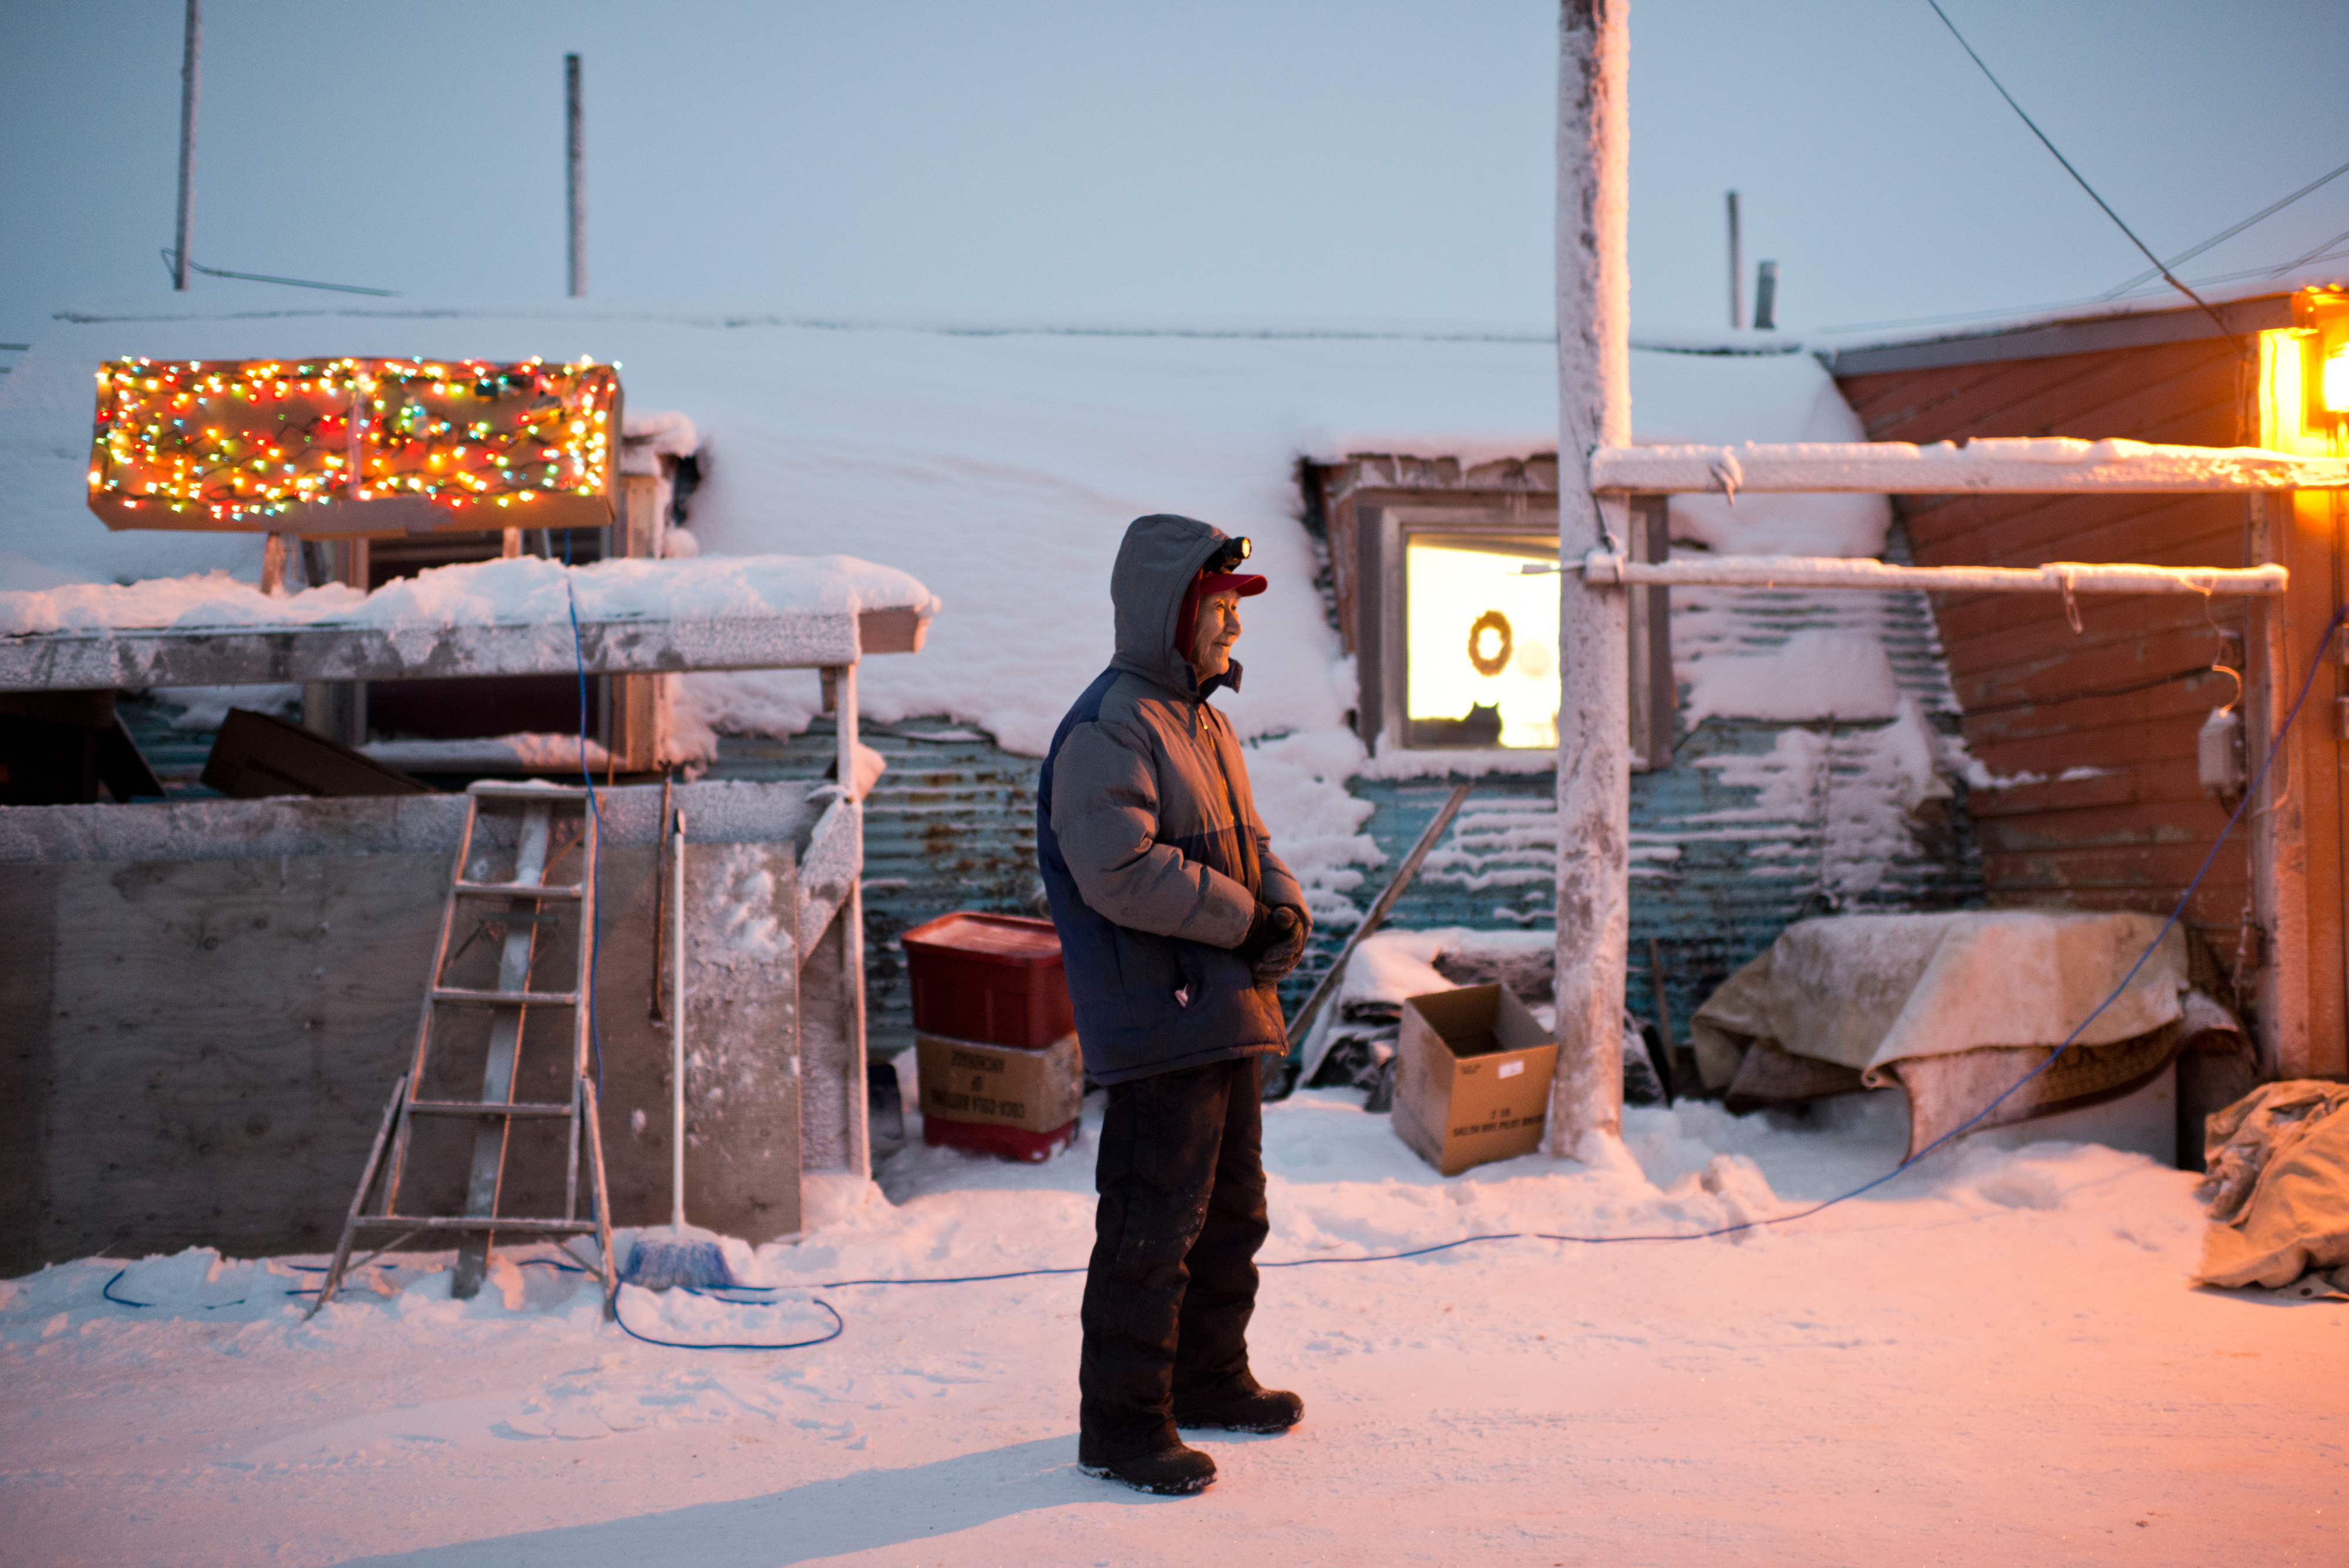 """Abel Akpik, standing outside his Quonset hut home, said he opposes the name change for his home city. """"You say you are from Barrow and they all know exactly where you are from,"""" Akpik said. Voters approved changing the name of the city of Barrow to Utqiaġvik in October, a change which went into effect on December 1. In Alaska's northernmost city, however, residents remain divided about whether they name should've changed at all, whether the process was hurried, and whether the Utqiagvik is even the proper Inupiaq place name. Photographed on Monday, December 12, 2016. (Marc Lester / Alaska Dispatch News)"""